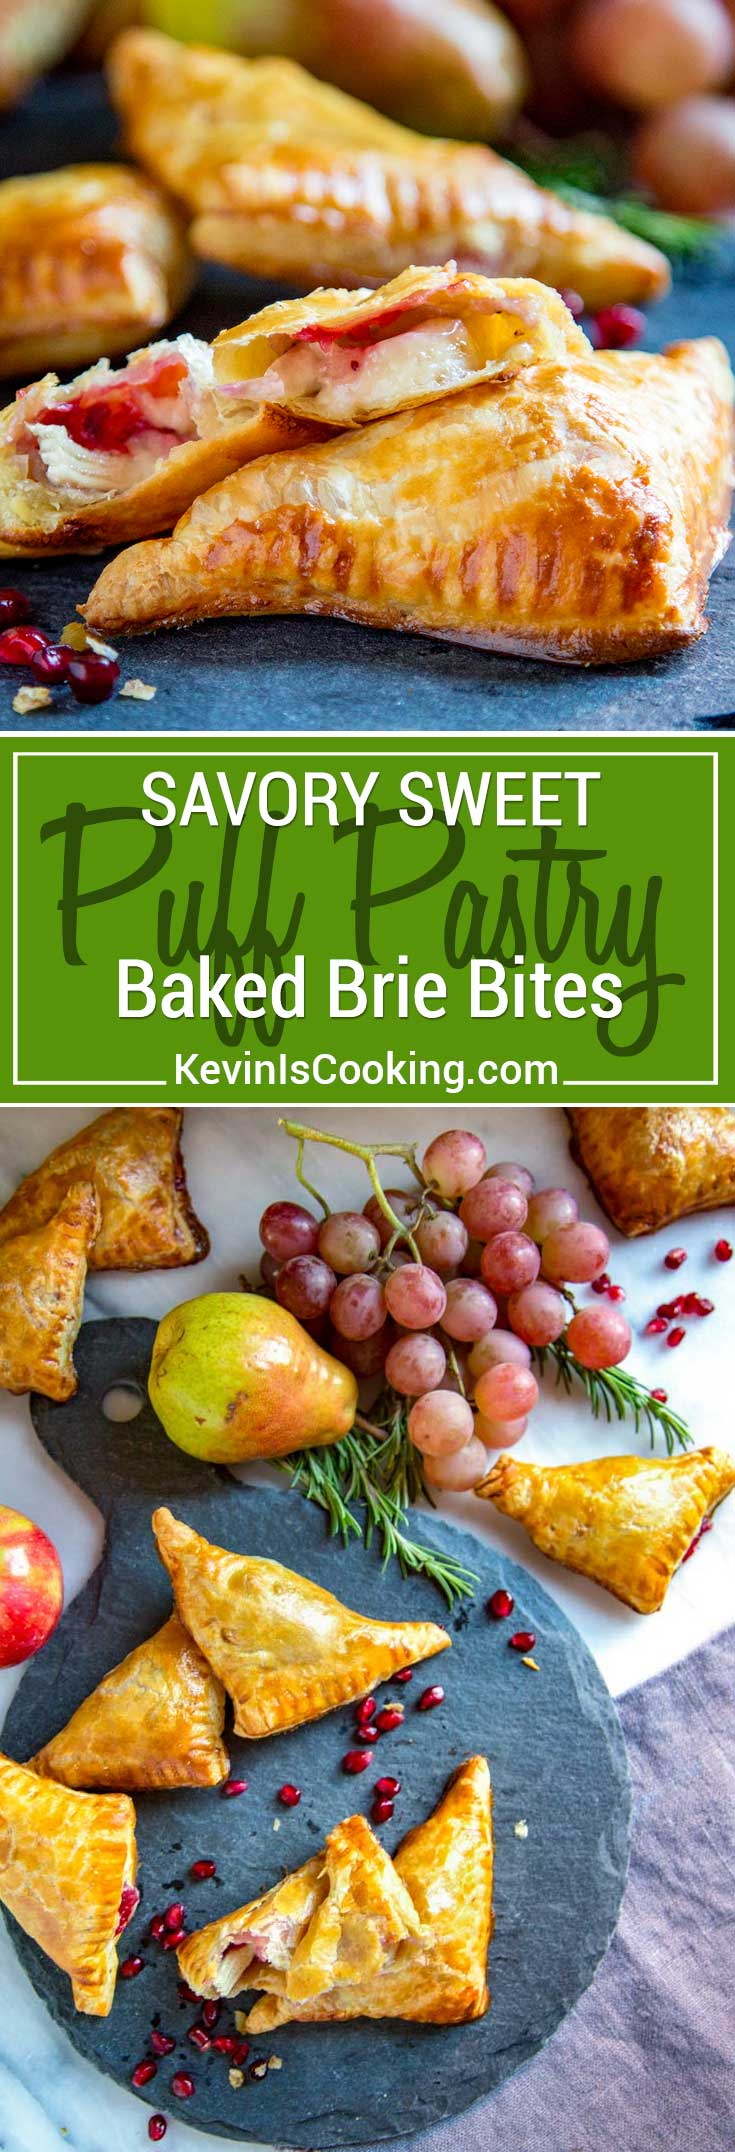 These tender Savory Sweet Baked Brie Bites are super easy to make using puff pastry, dijon mustard, Brie cheese, cranberry sauce, or your favorite jam. Perfect party food!